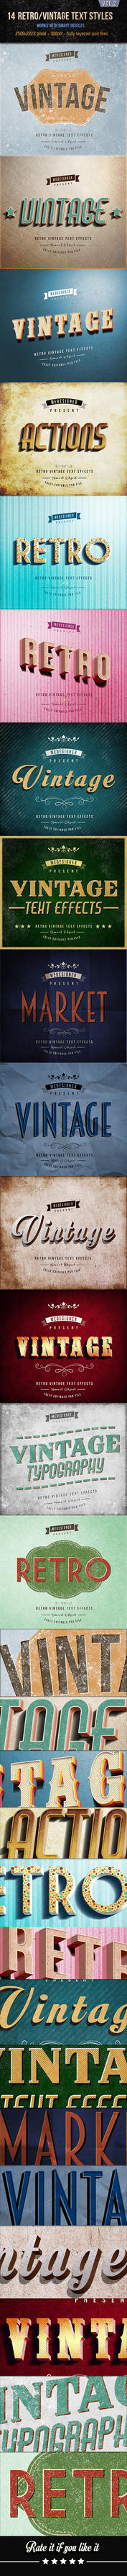 14 Retro / Vintage Text Effects V.2 by simoke820